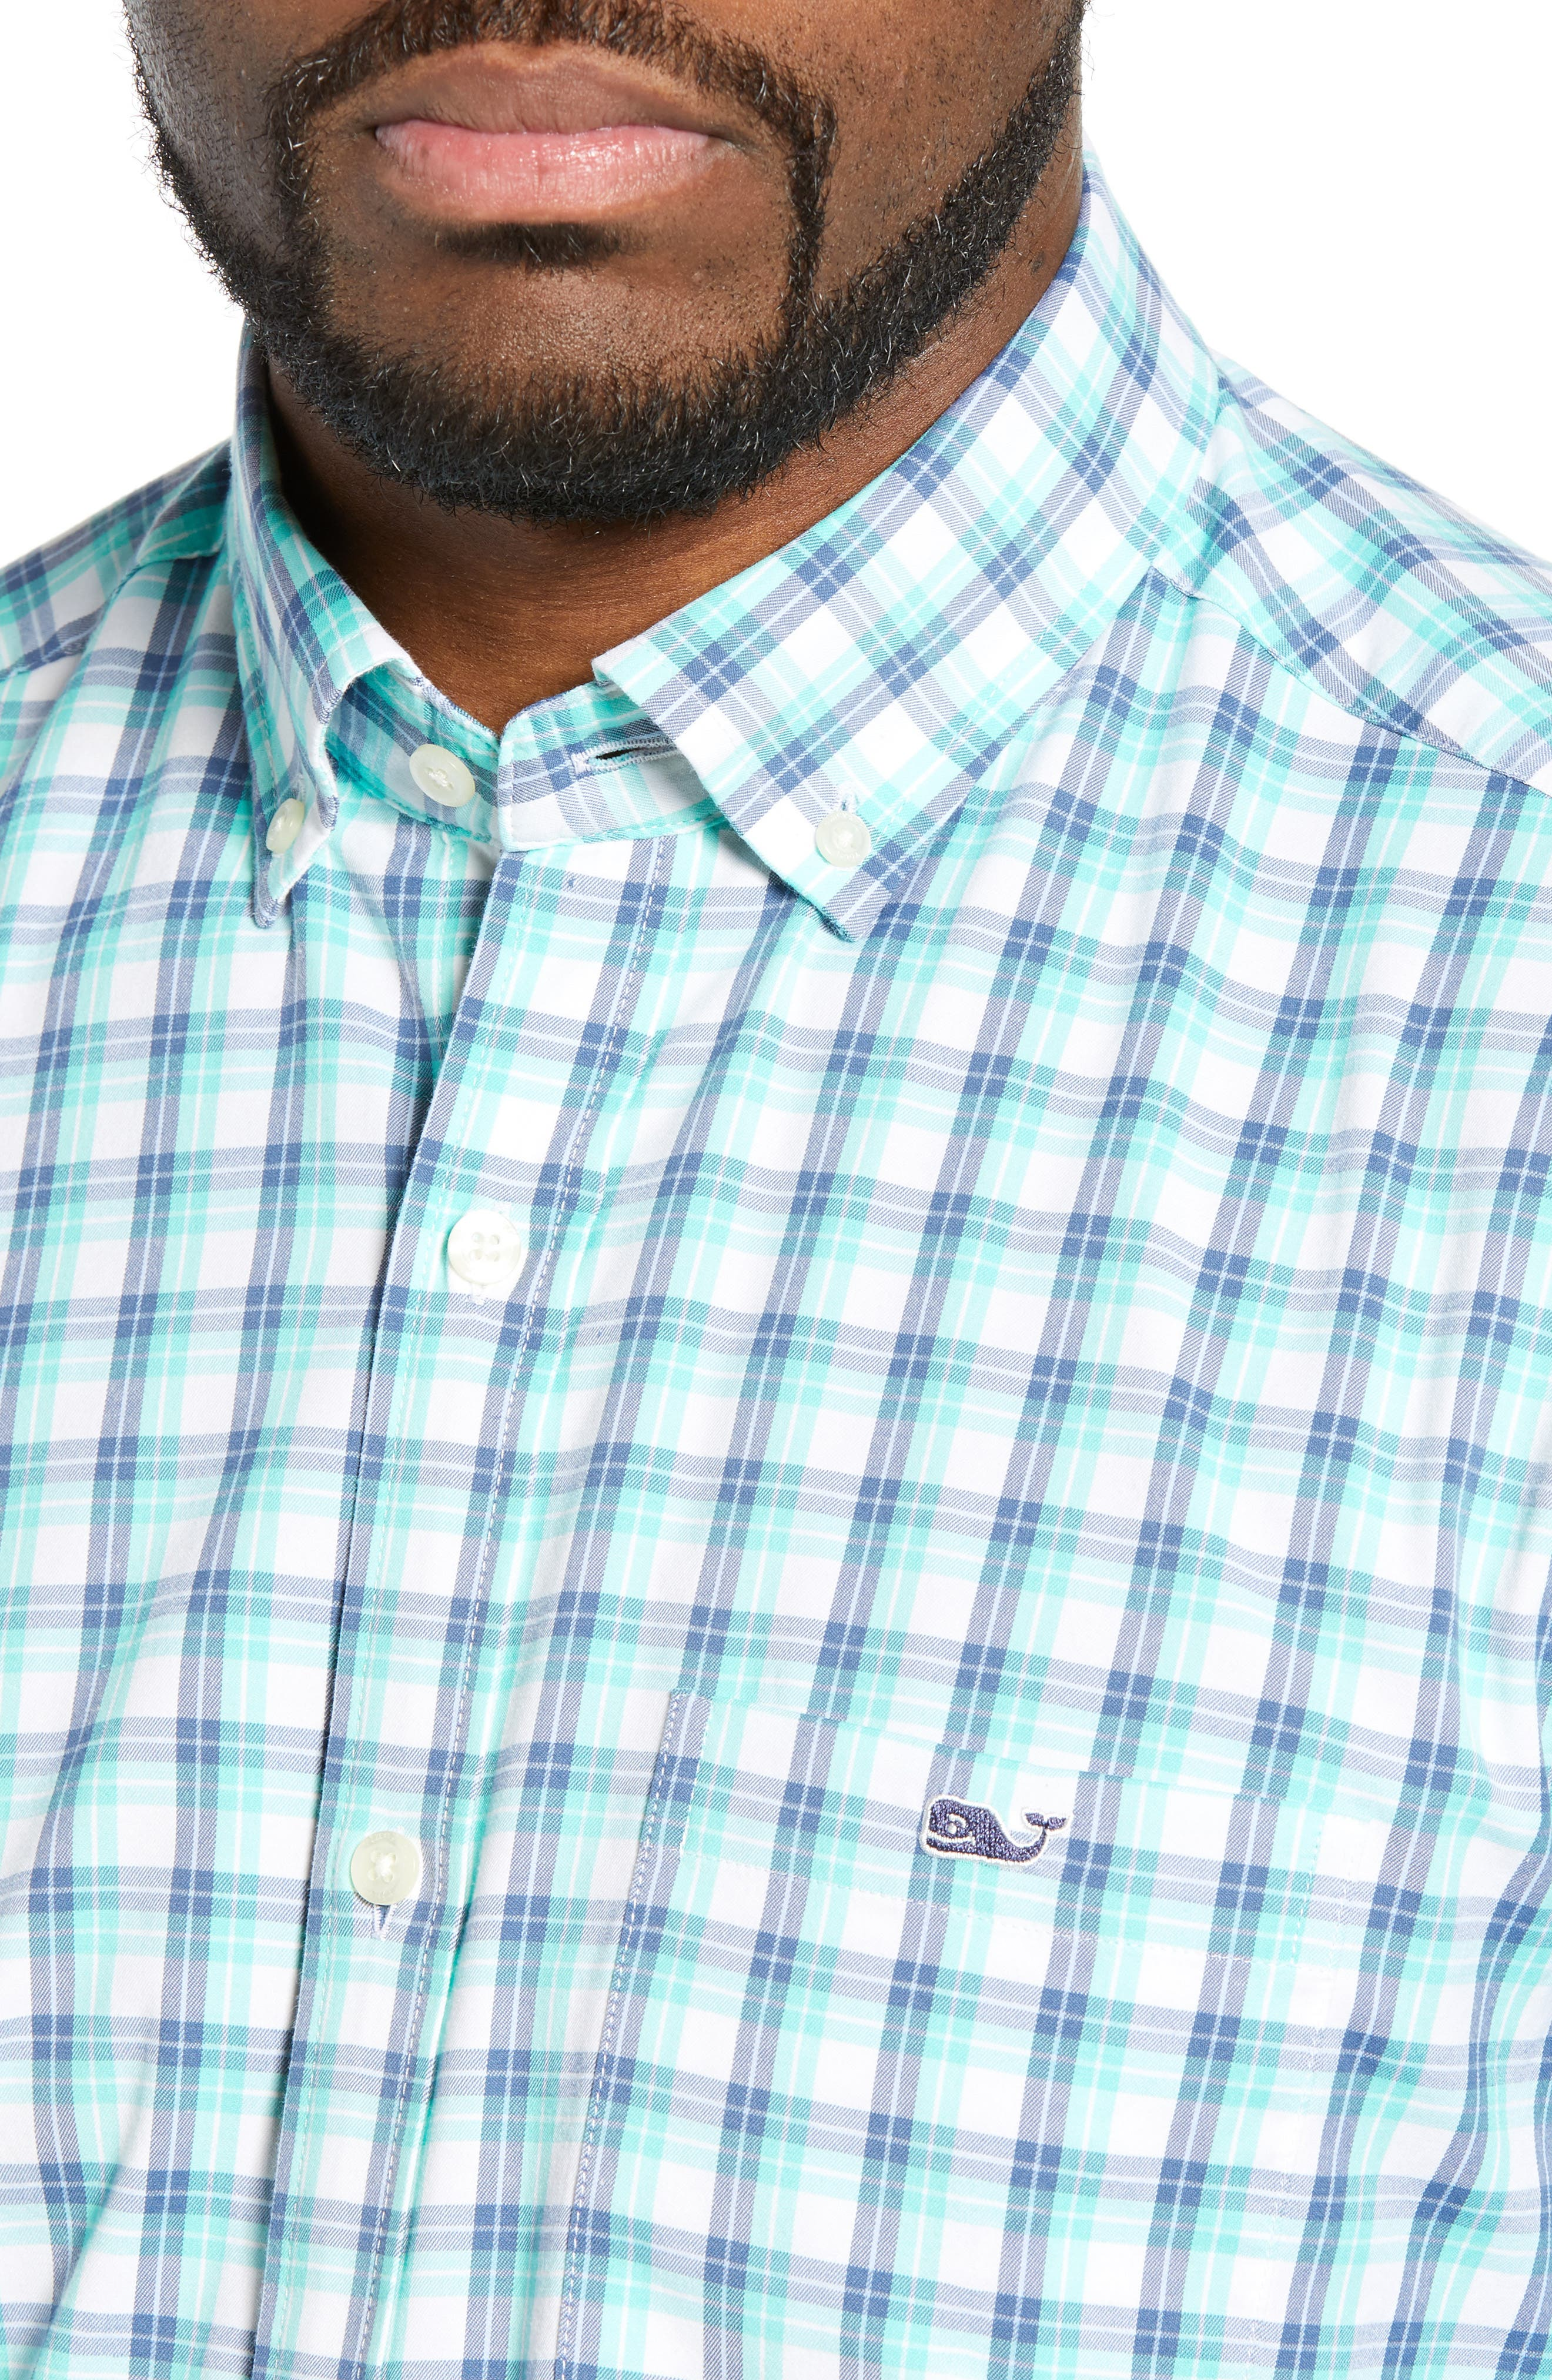 VINEYARD VINES,                             South Street Tucker Slim Fit Sport Shirt,                             Alternate thumbnail 2, color,                             CAPRI BLUE